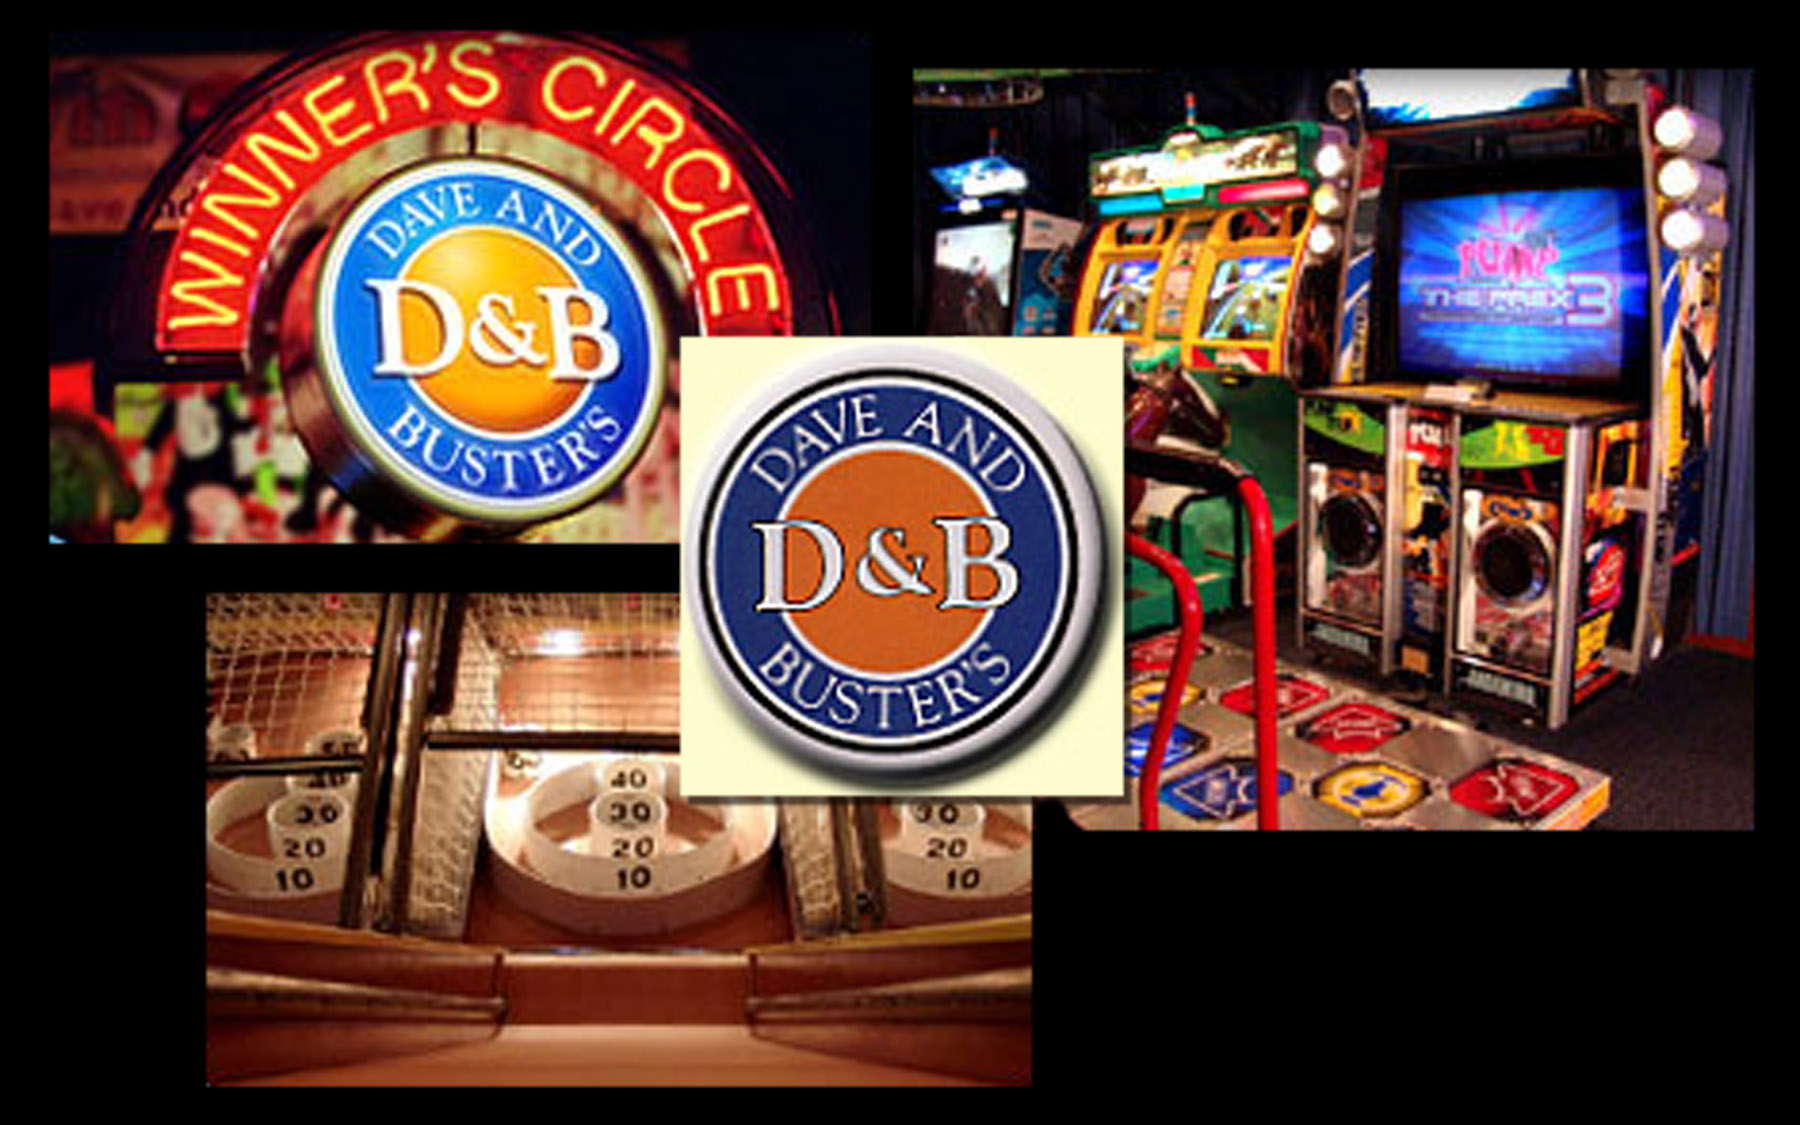 Dave & Buster's in Indianapolis, IN